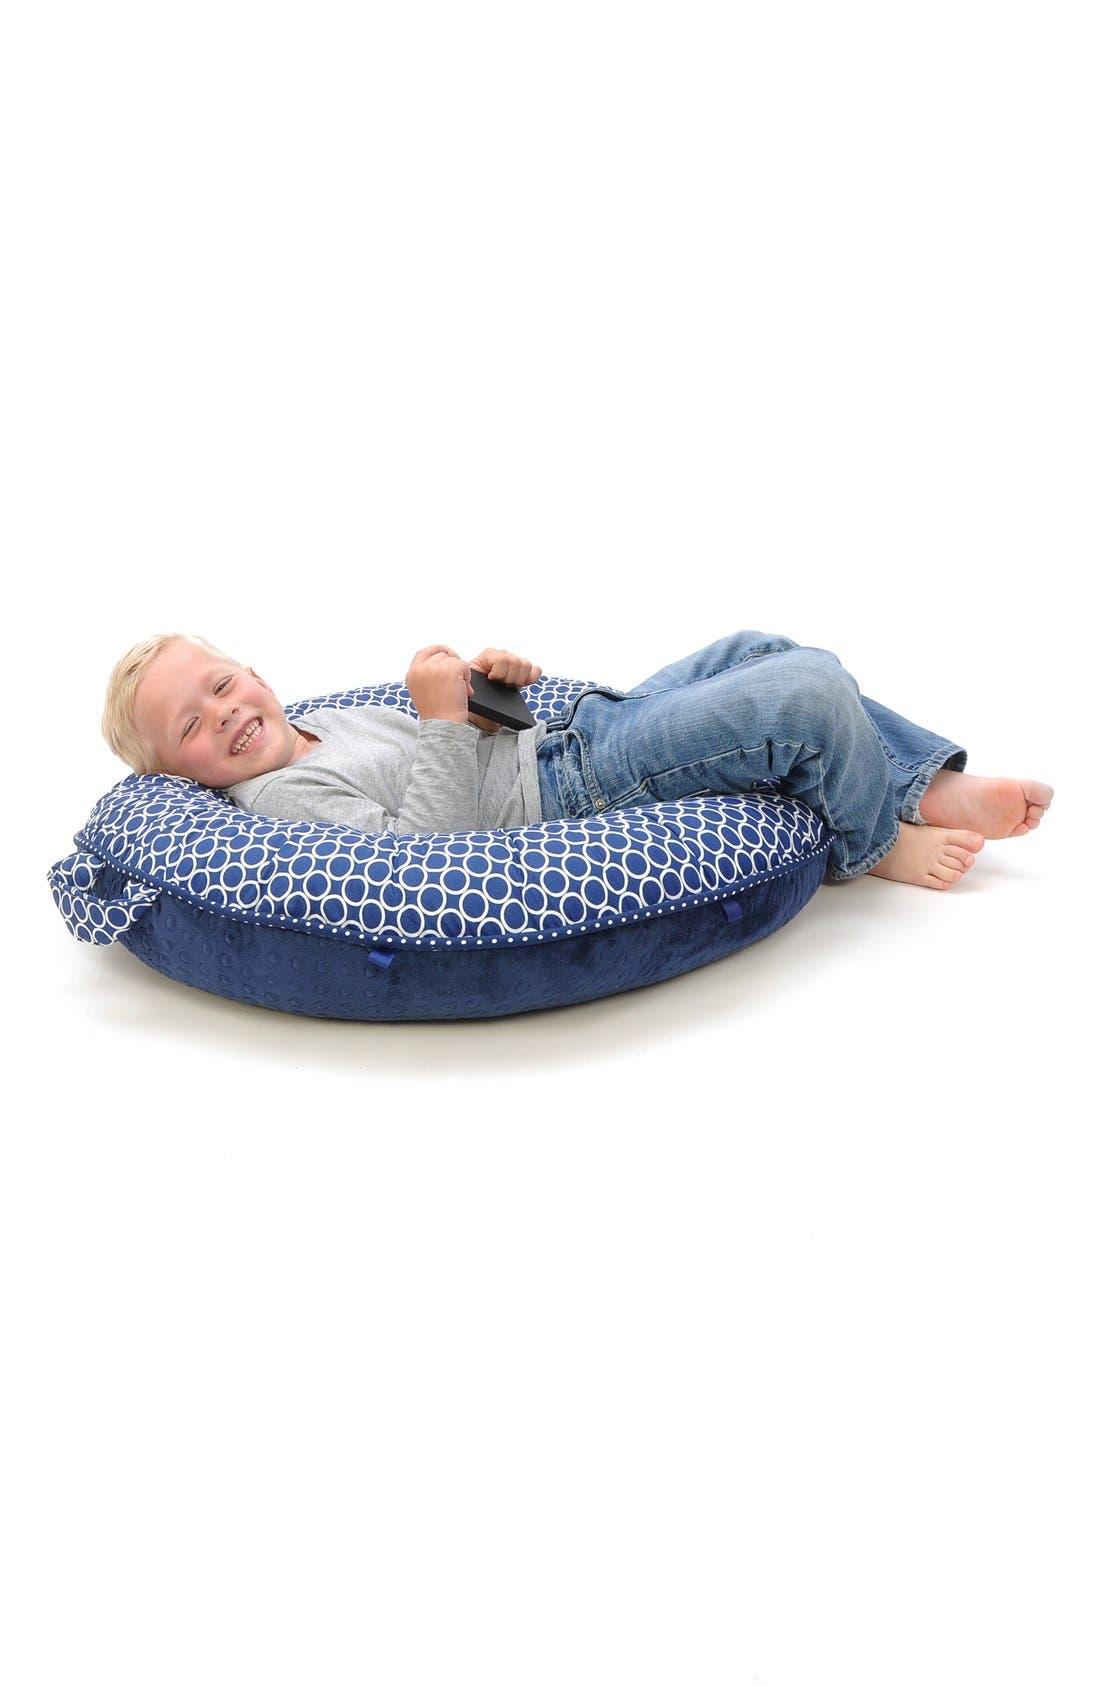 'Nathan' Portable Floor Pillow,                             Alternate thumbnail 4, color,                             410